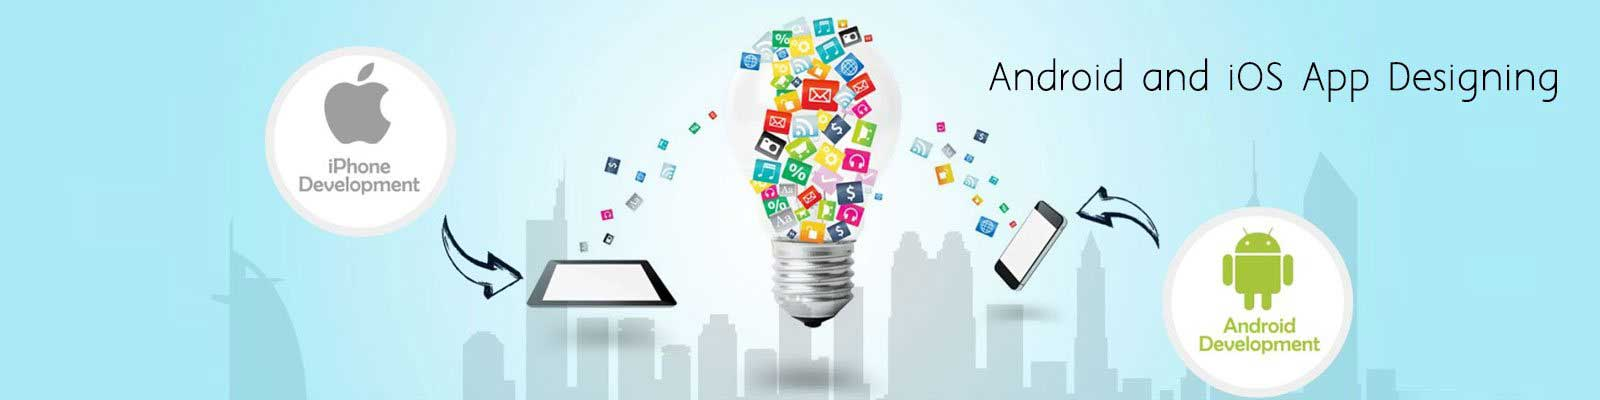 Android and iOS App Designing